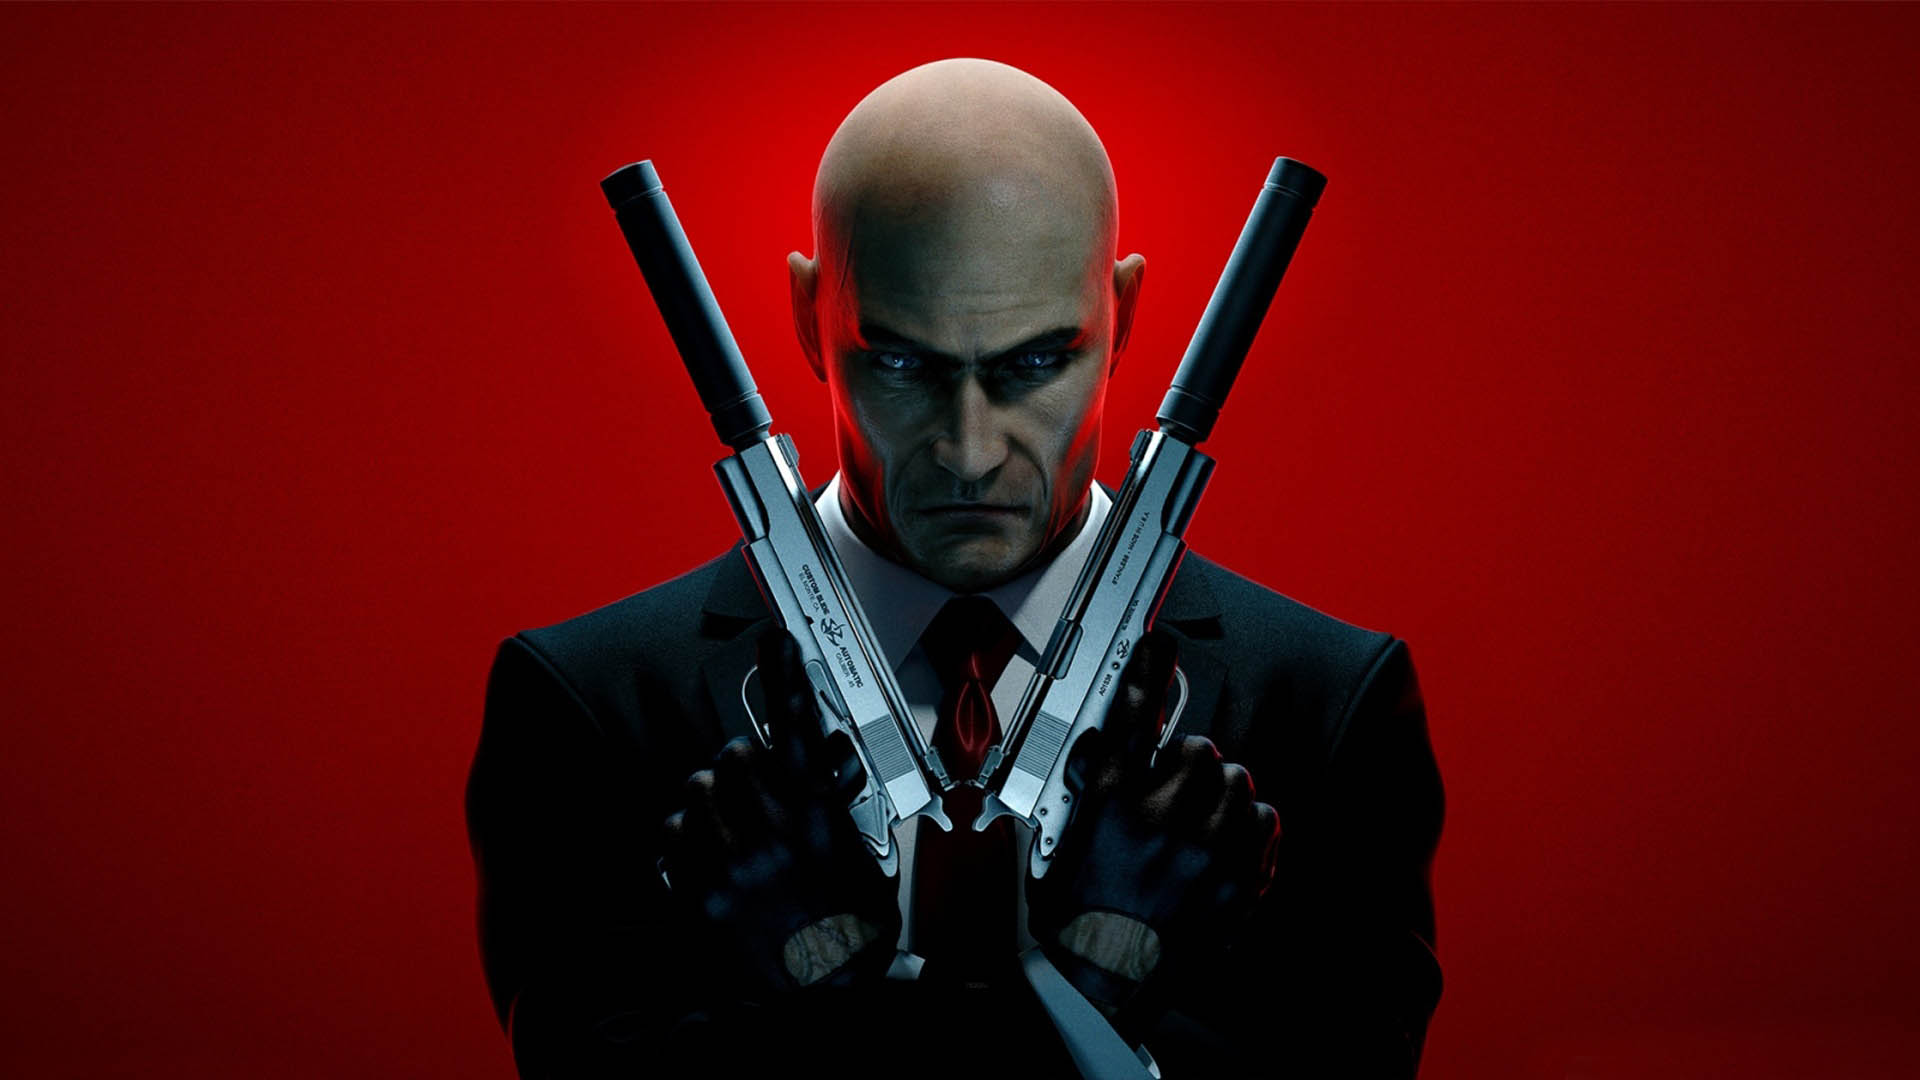 Hitman Absolution Wallpaper HD 1920x1080 ImageBankbiz 1920x1080